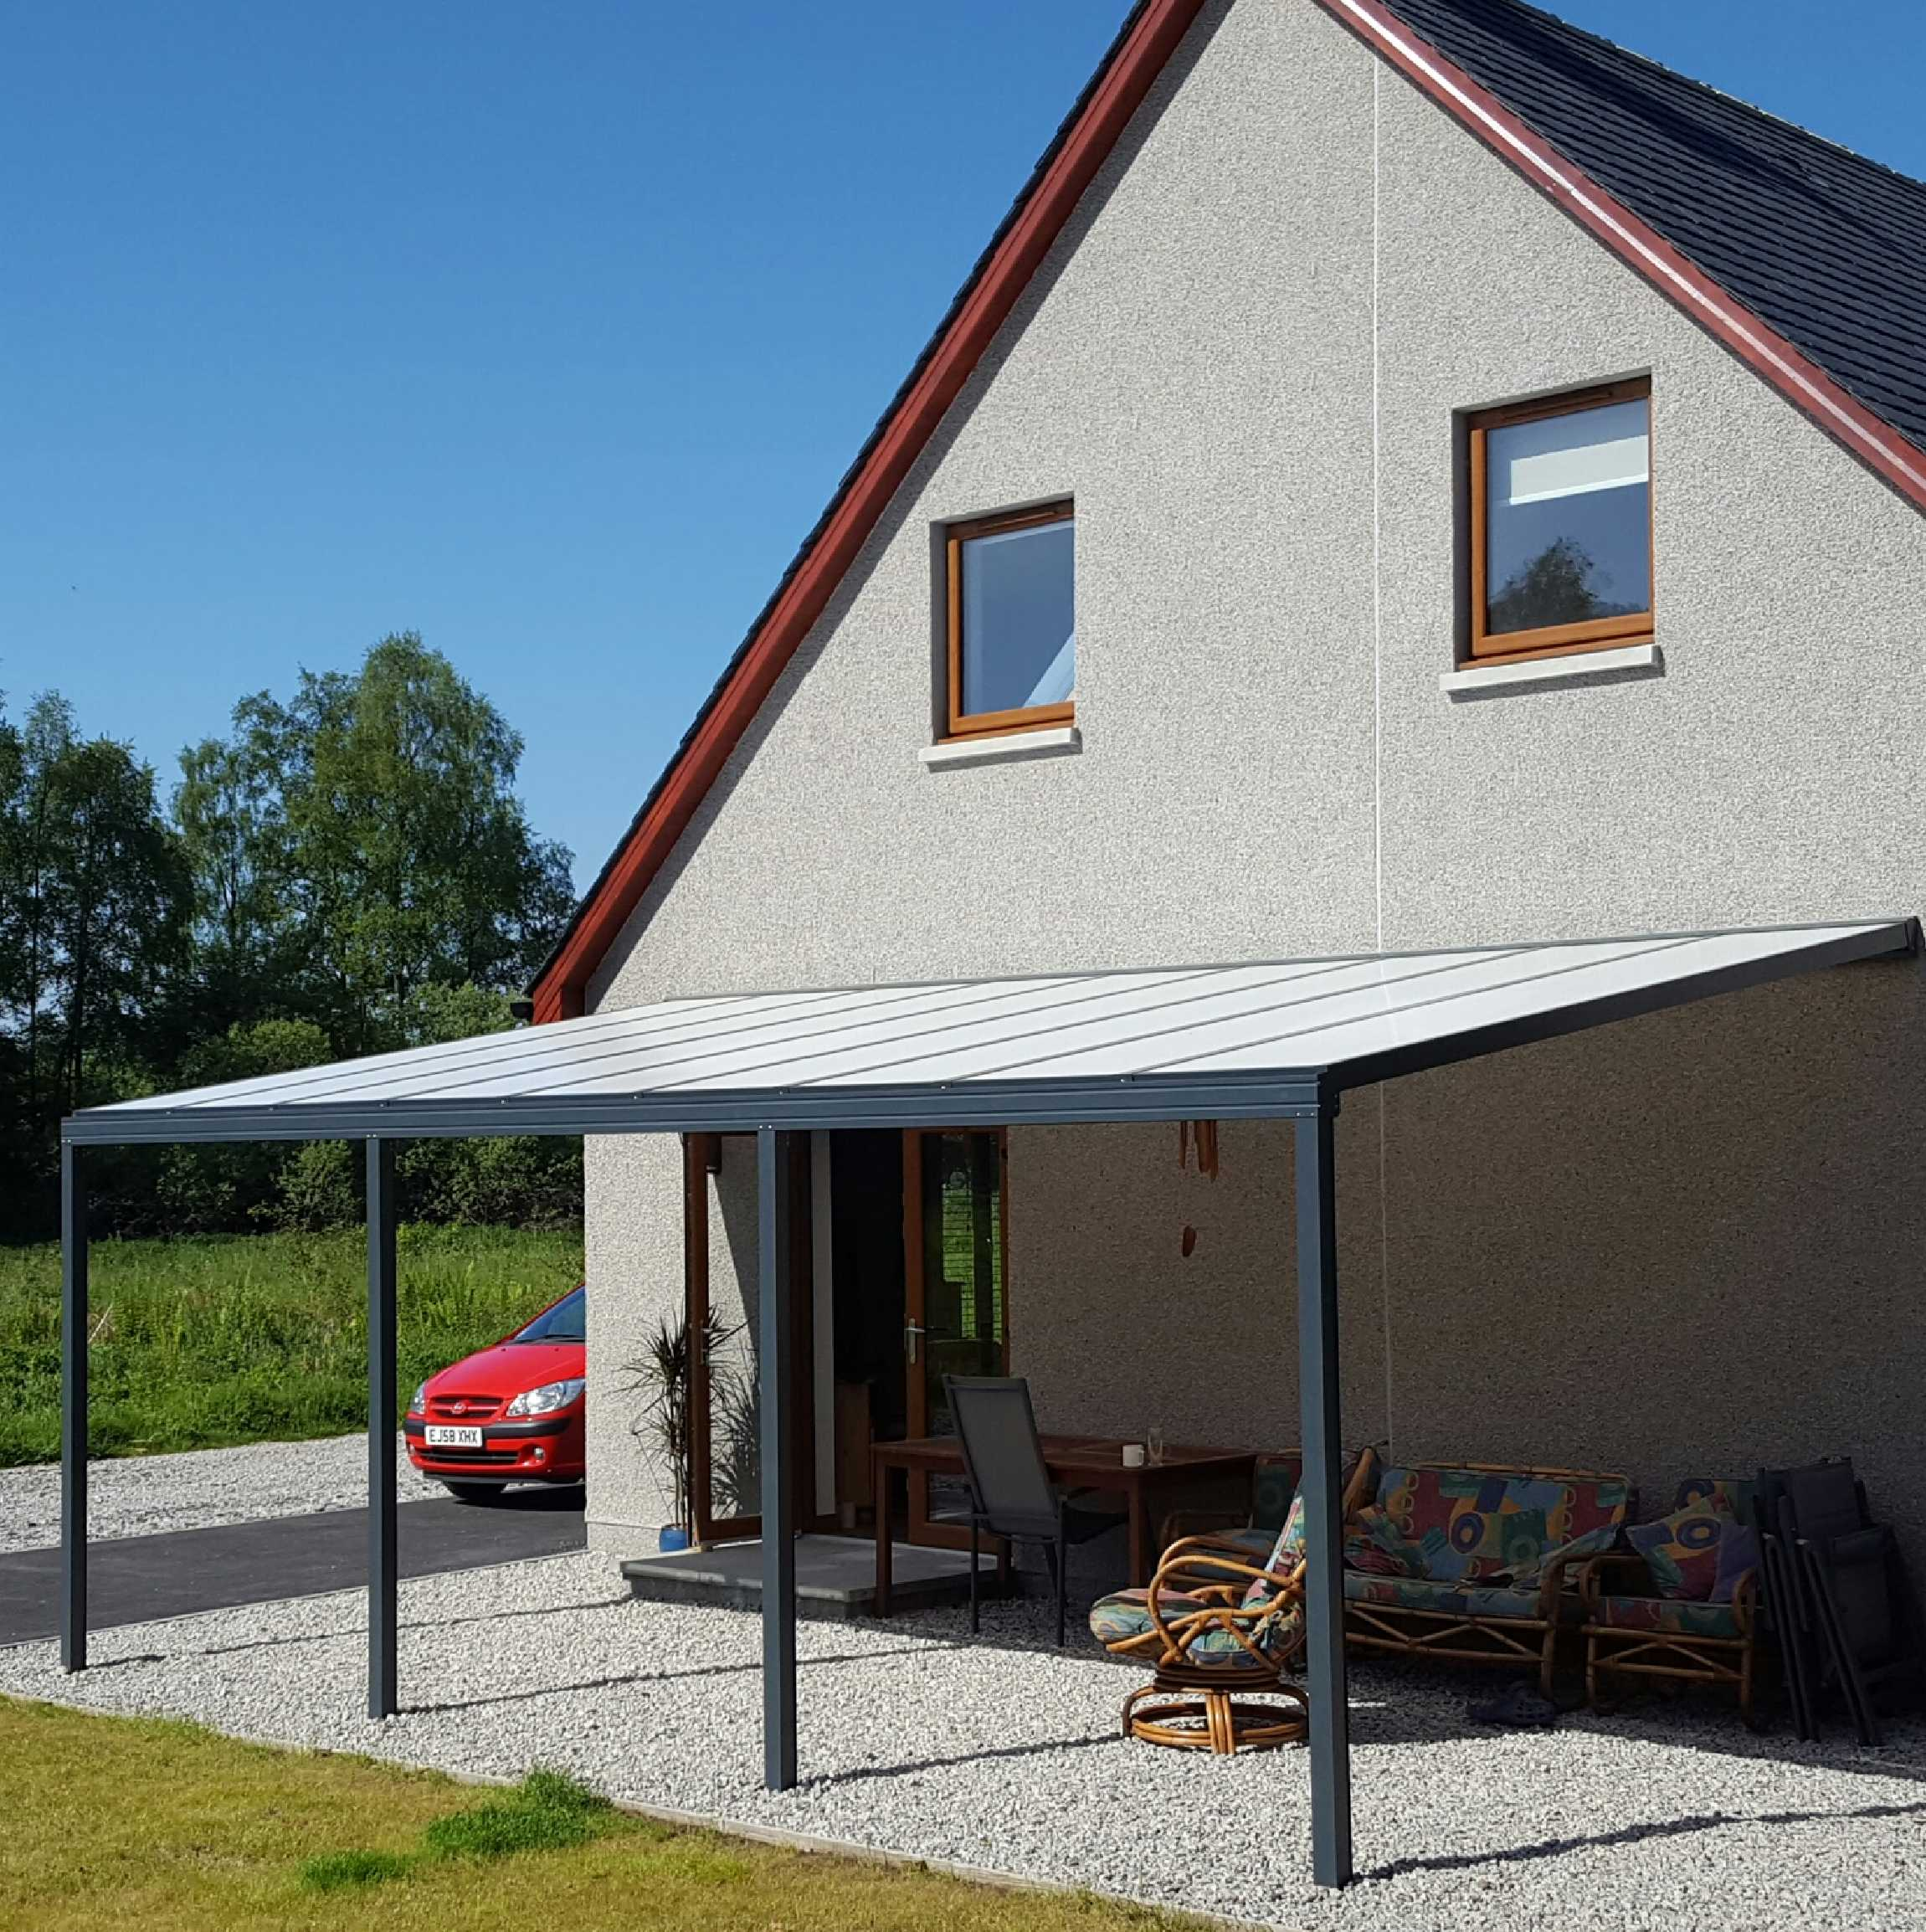 Great selection of Omega Smart Lean-To Canopy, Anthracite Grey, 16mm Polycarbonate Glazing - 2.1m (W) x 3.5m (P), (2) Supporting Posts